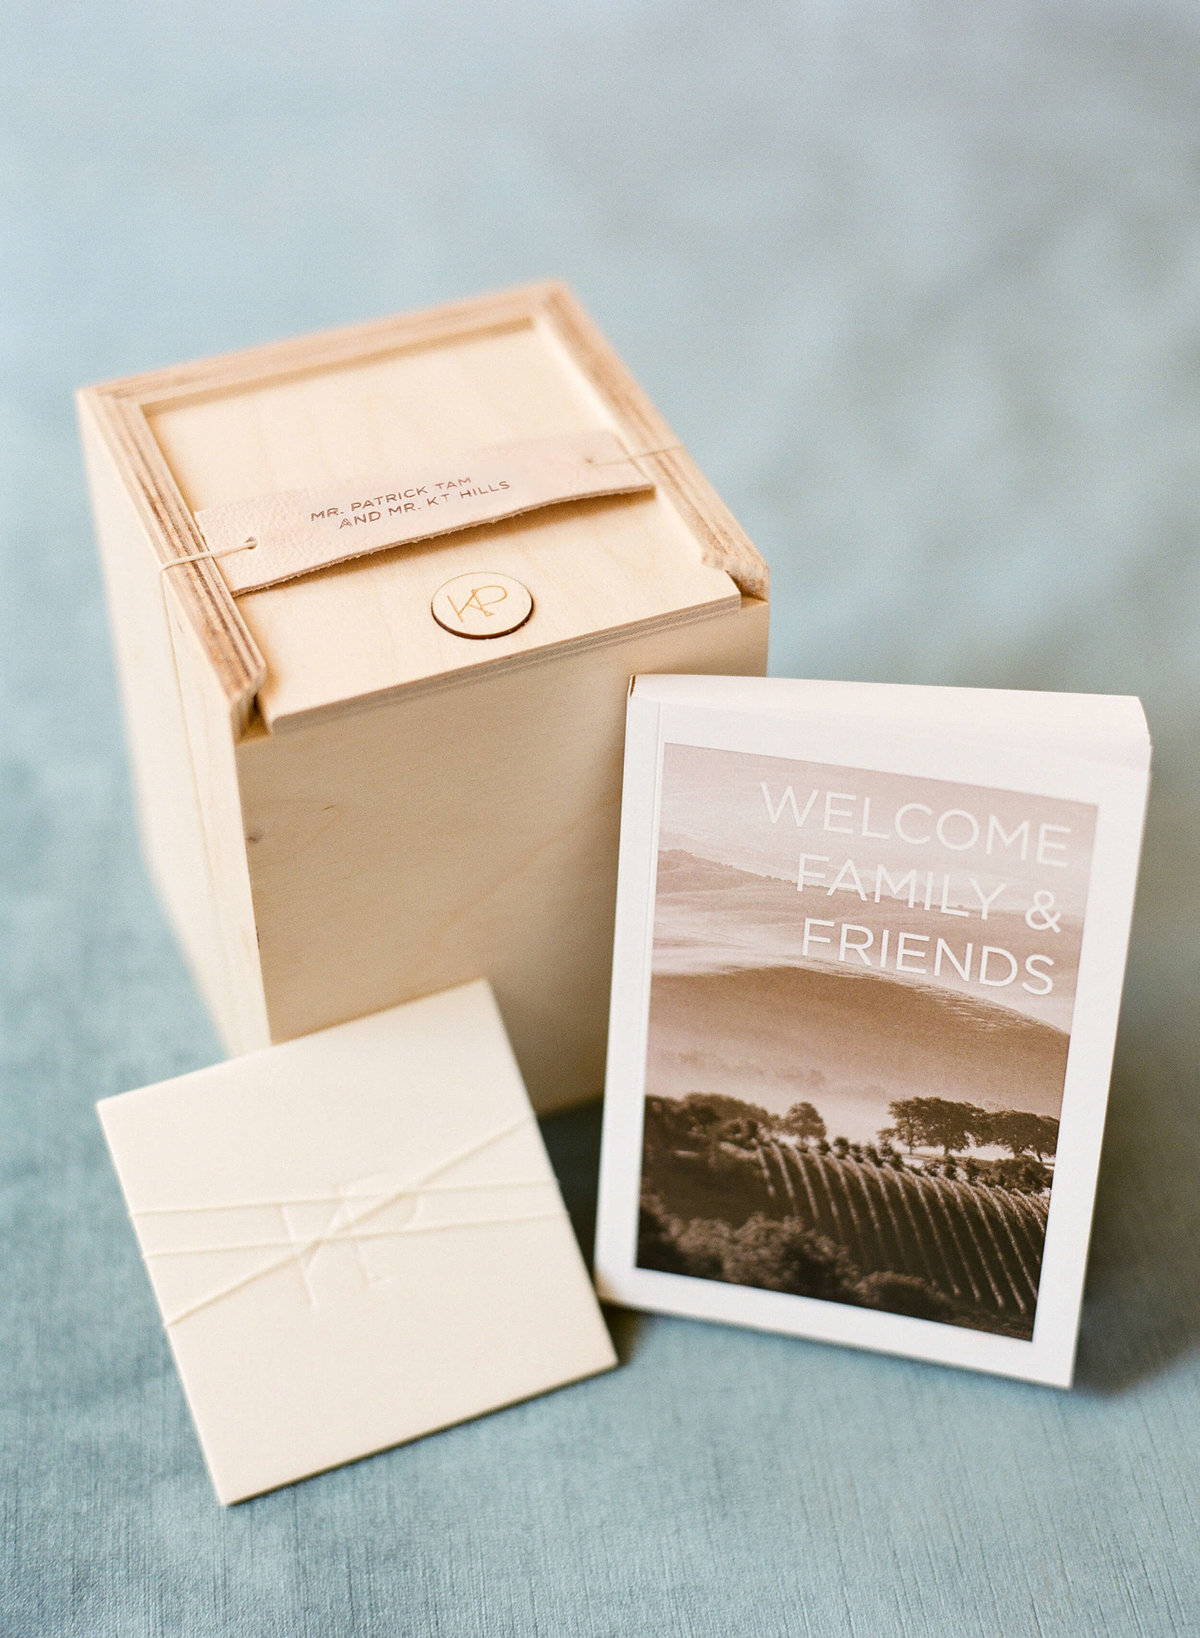 17-KTMerry-wedding-photography-welcome-box-NapaValley